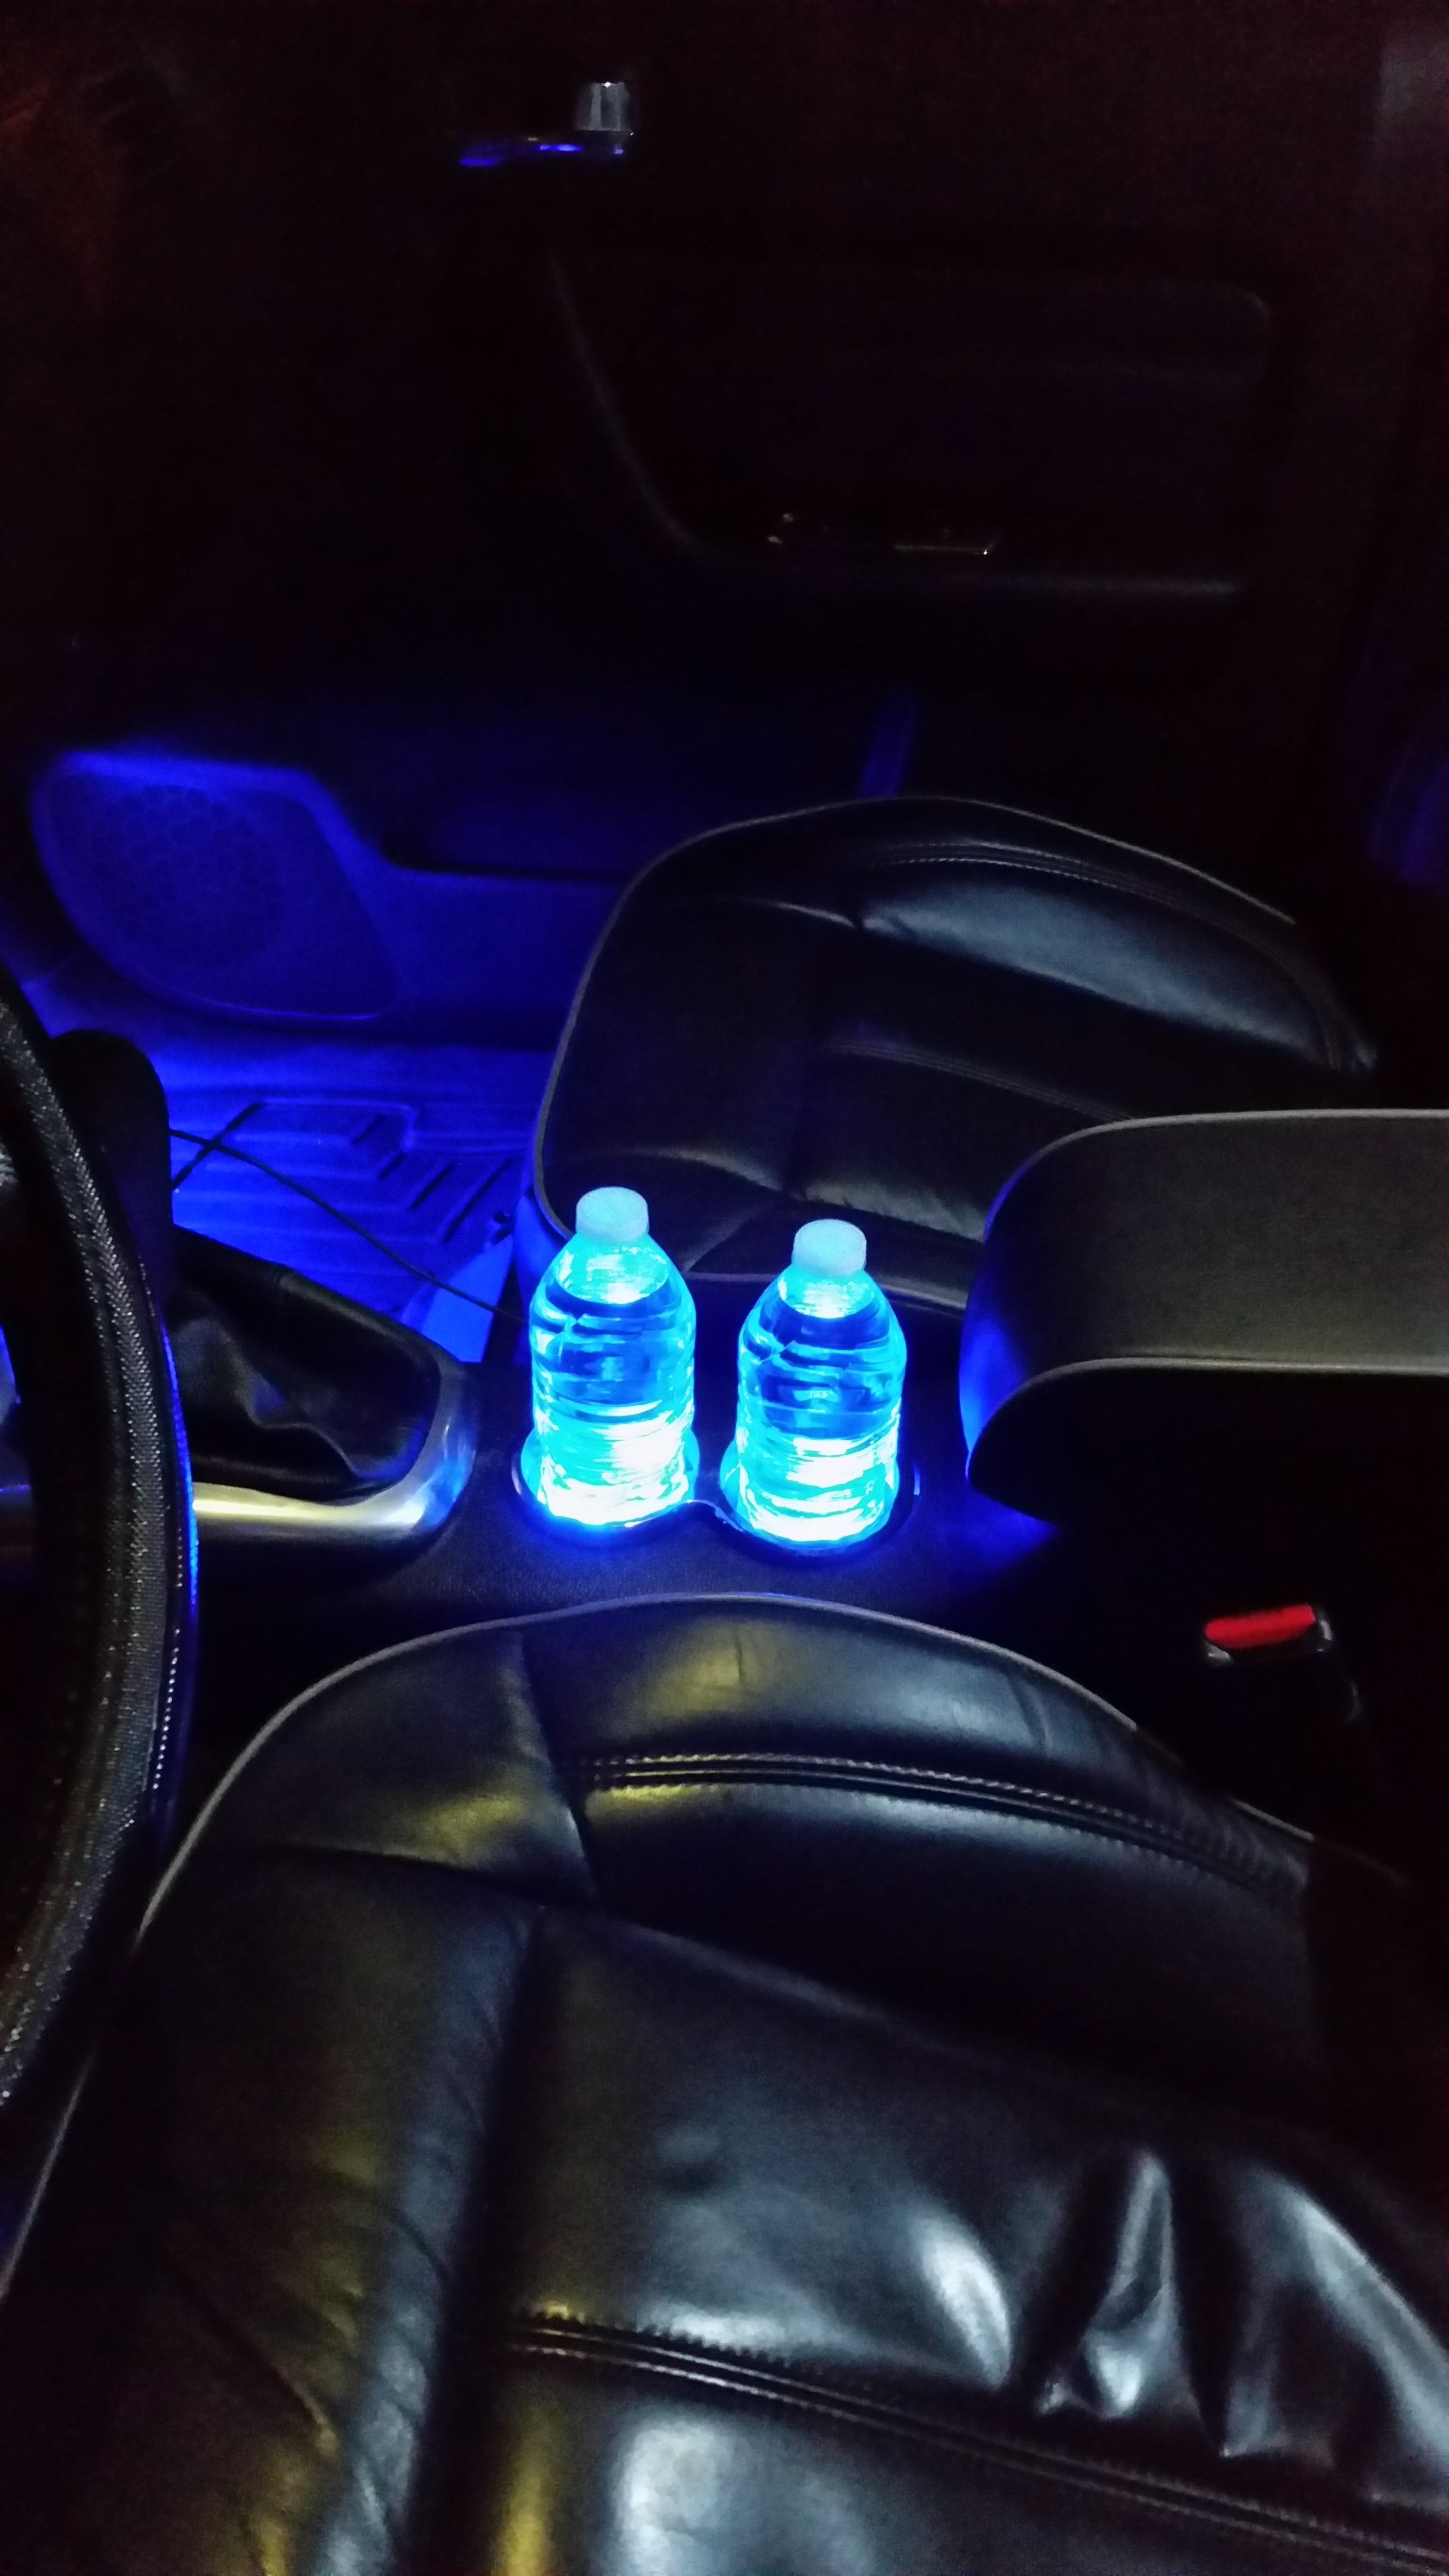 Closeup Picture Of The Blue LED Cupholder Lighting I Just Installed In The  Custom 2007 Hummer H3X Iu0027ve Worked On For Over A Year.